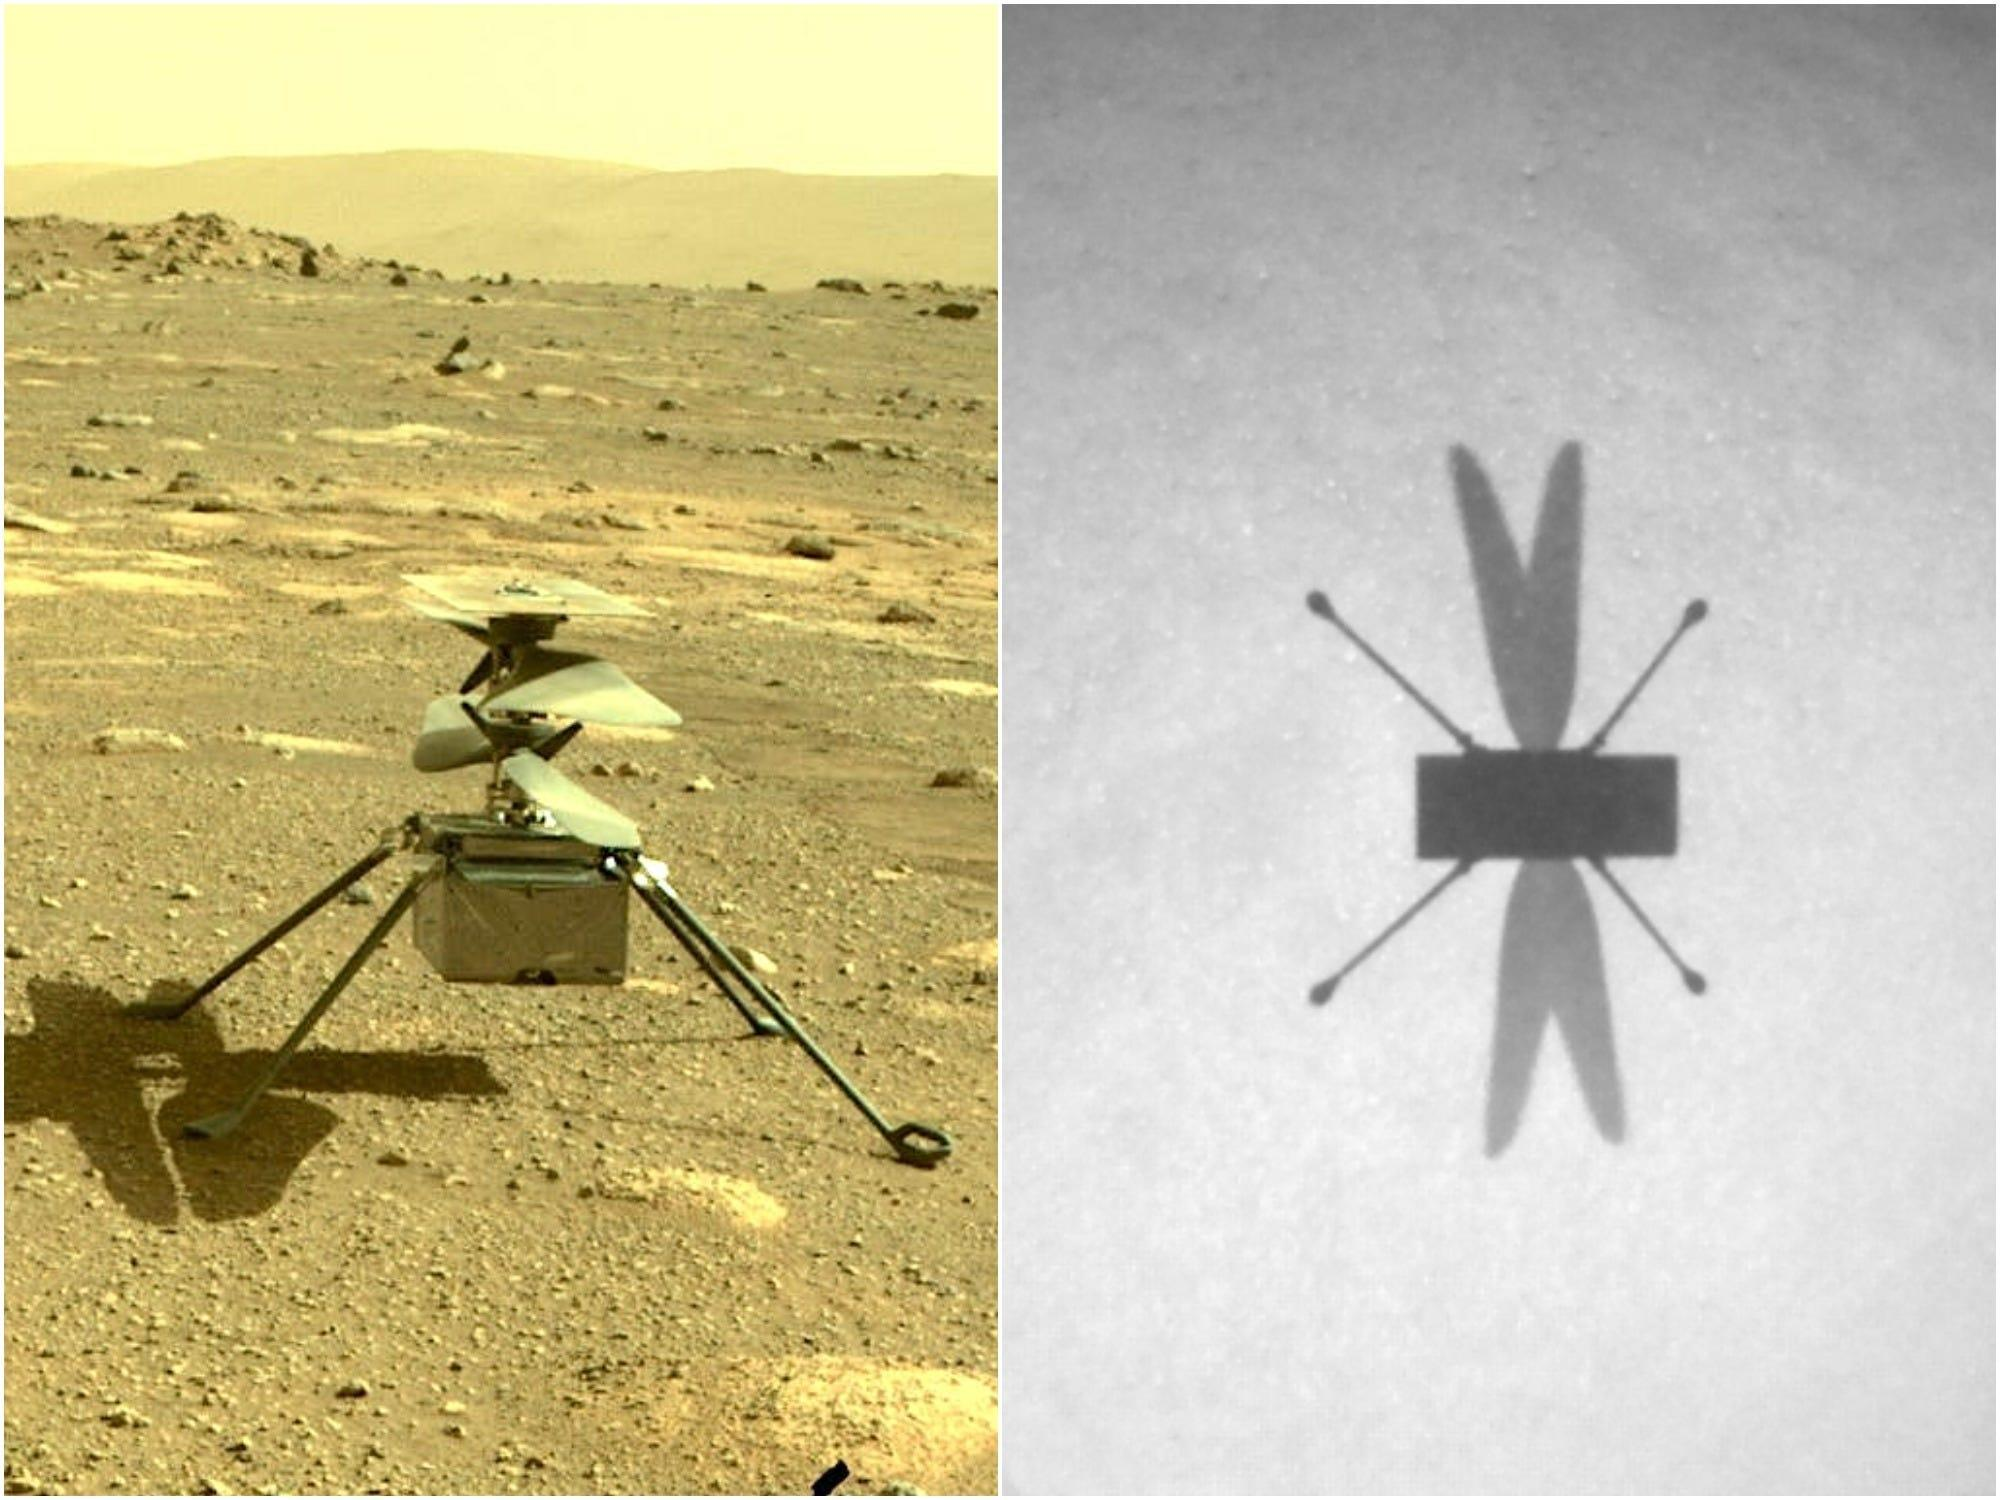 NASA's Mars helicopter has now flown successfully 8 times, beaming back photos that look like a sci-fi film